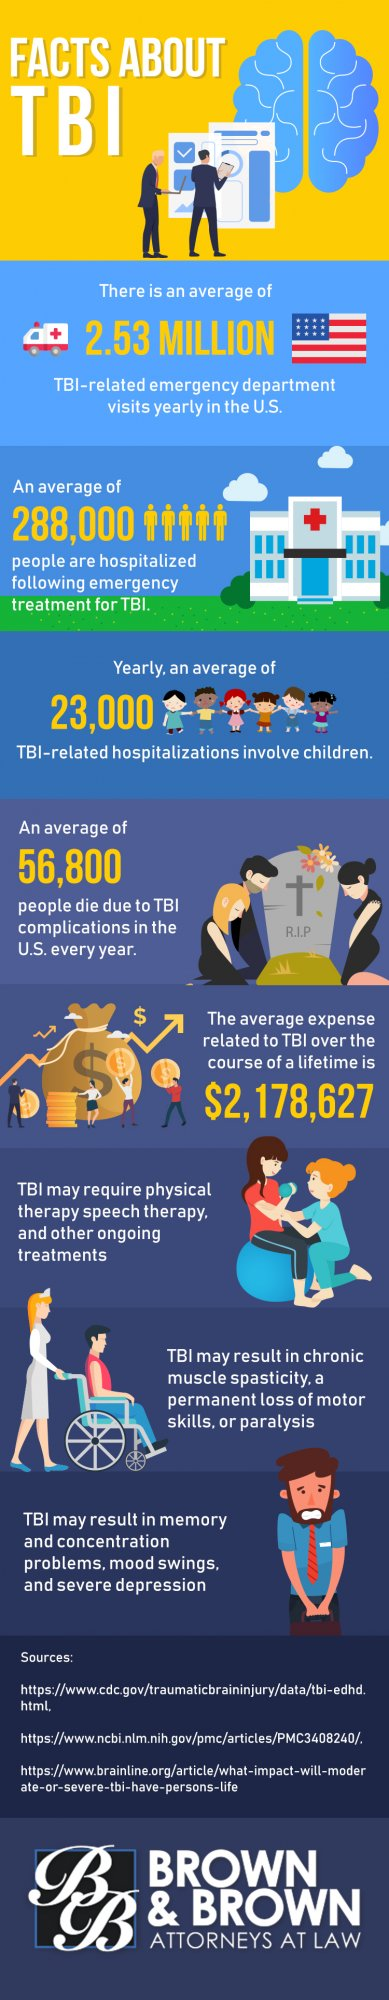 TBI Facts Infographic from Brown Law Office in St. Louis